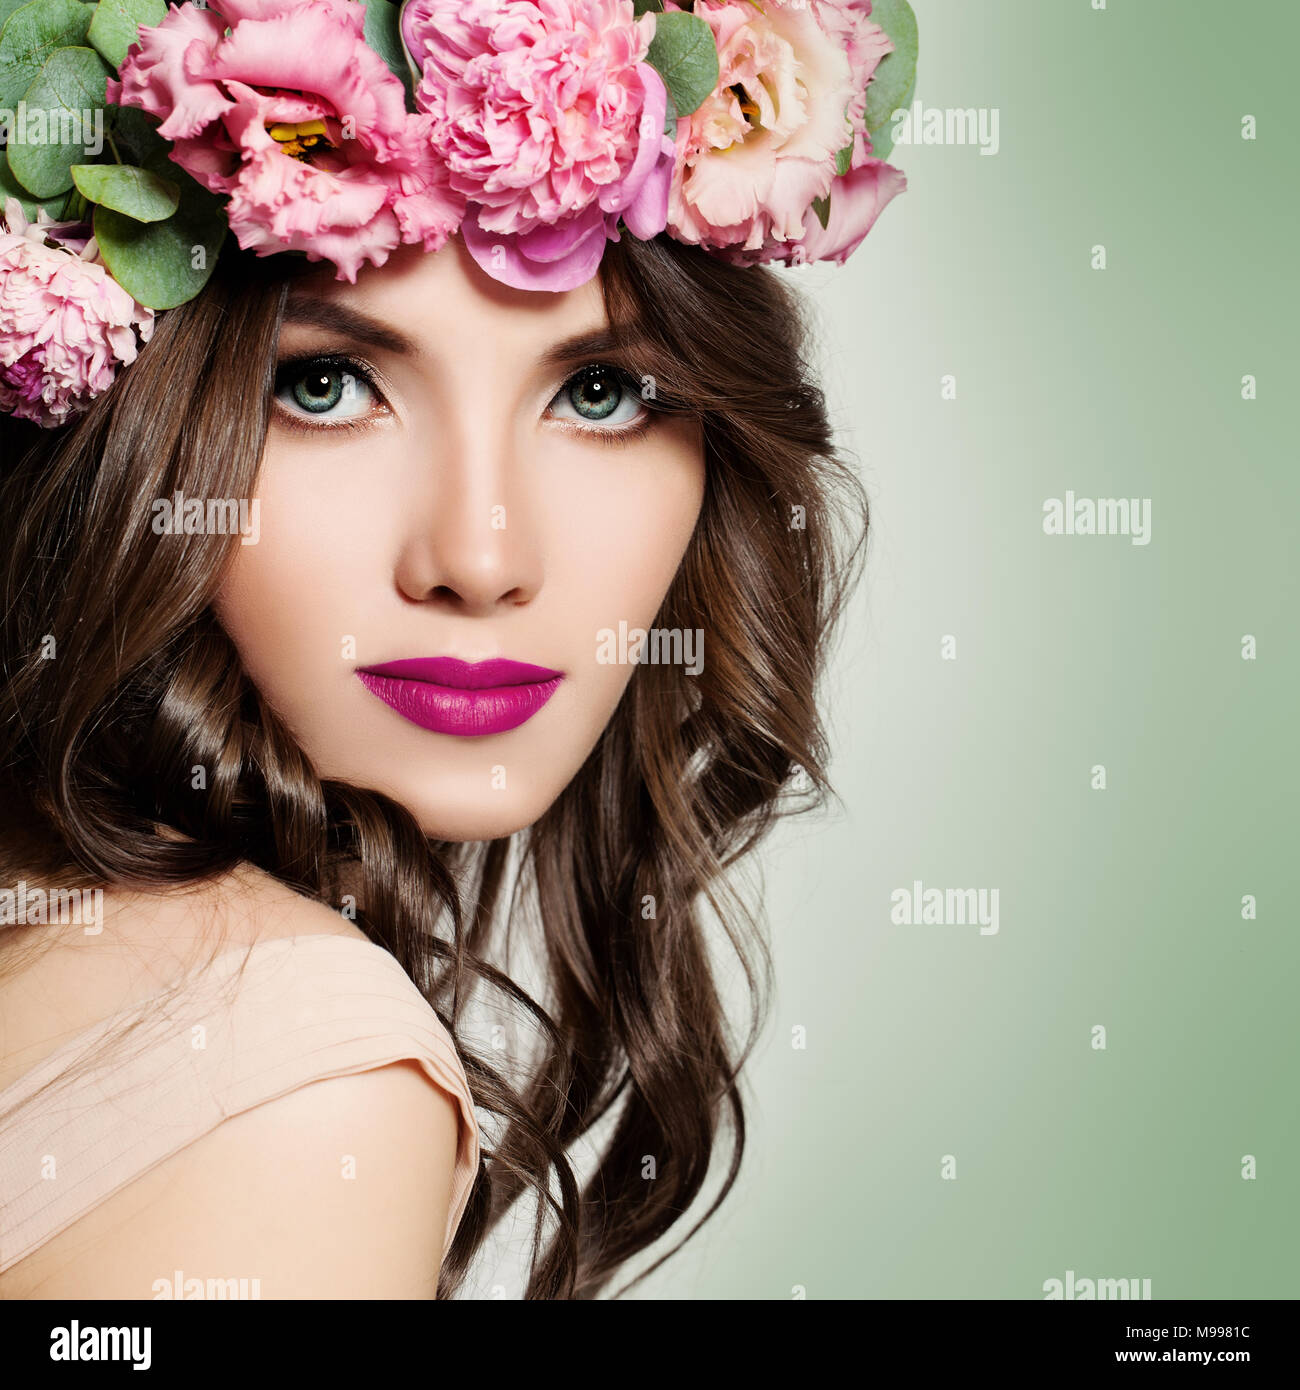 Beautiful Girl With Flowers Wreath Long Permed Curly Hair And